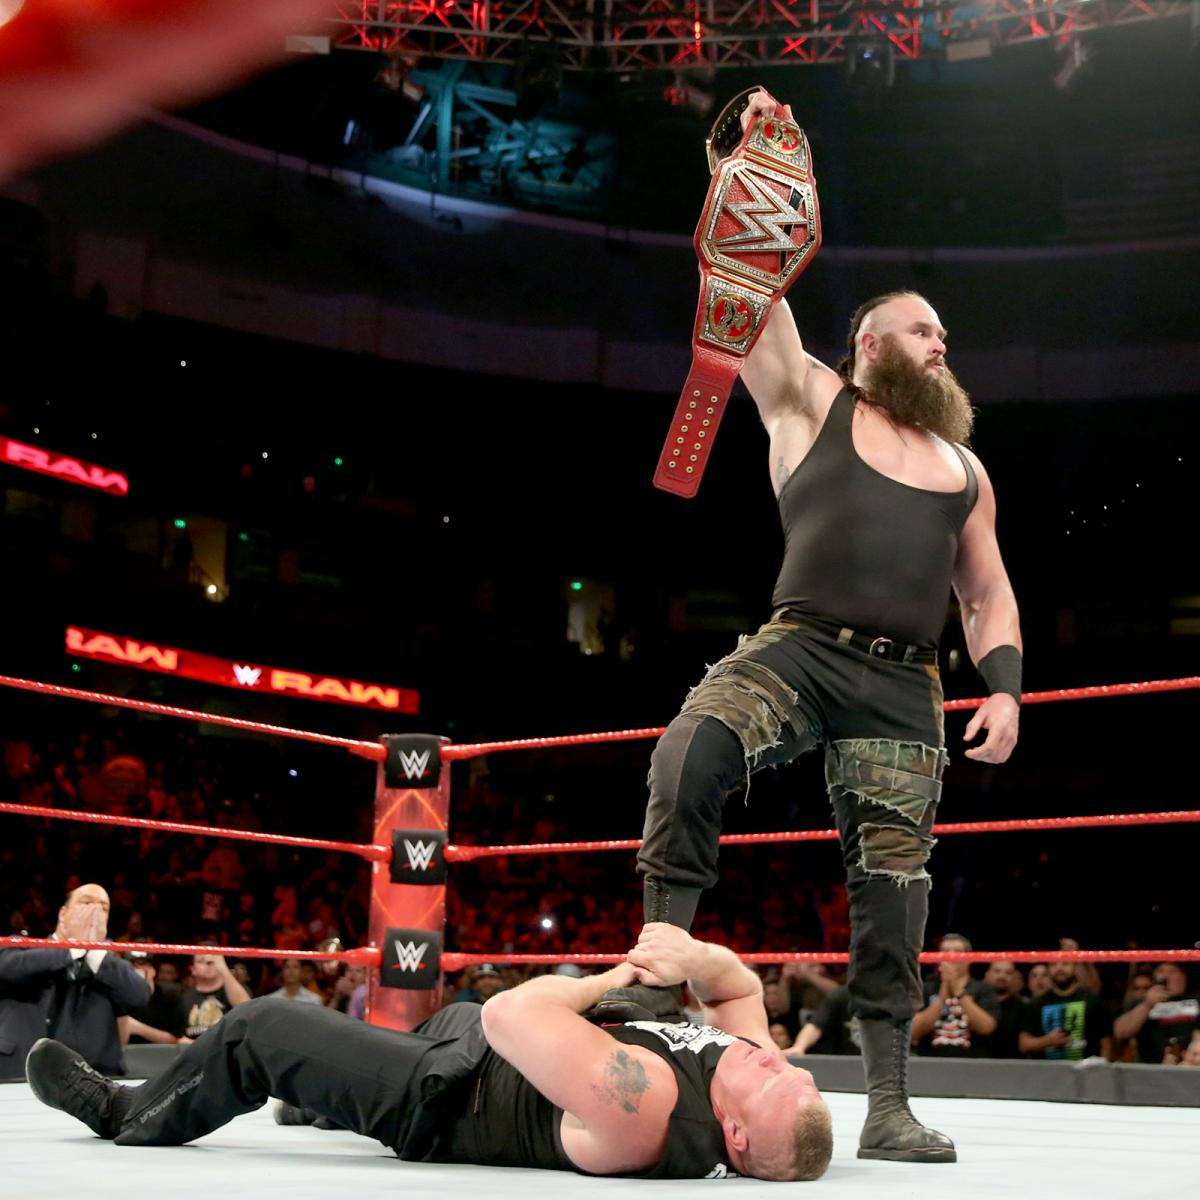 Randy Orton wins WWE US Title At Fastlane With A Powerslam